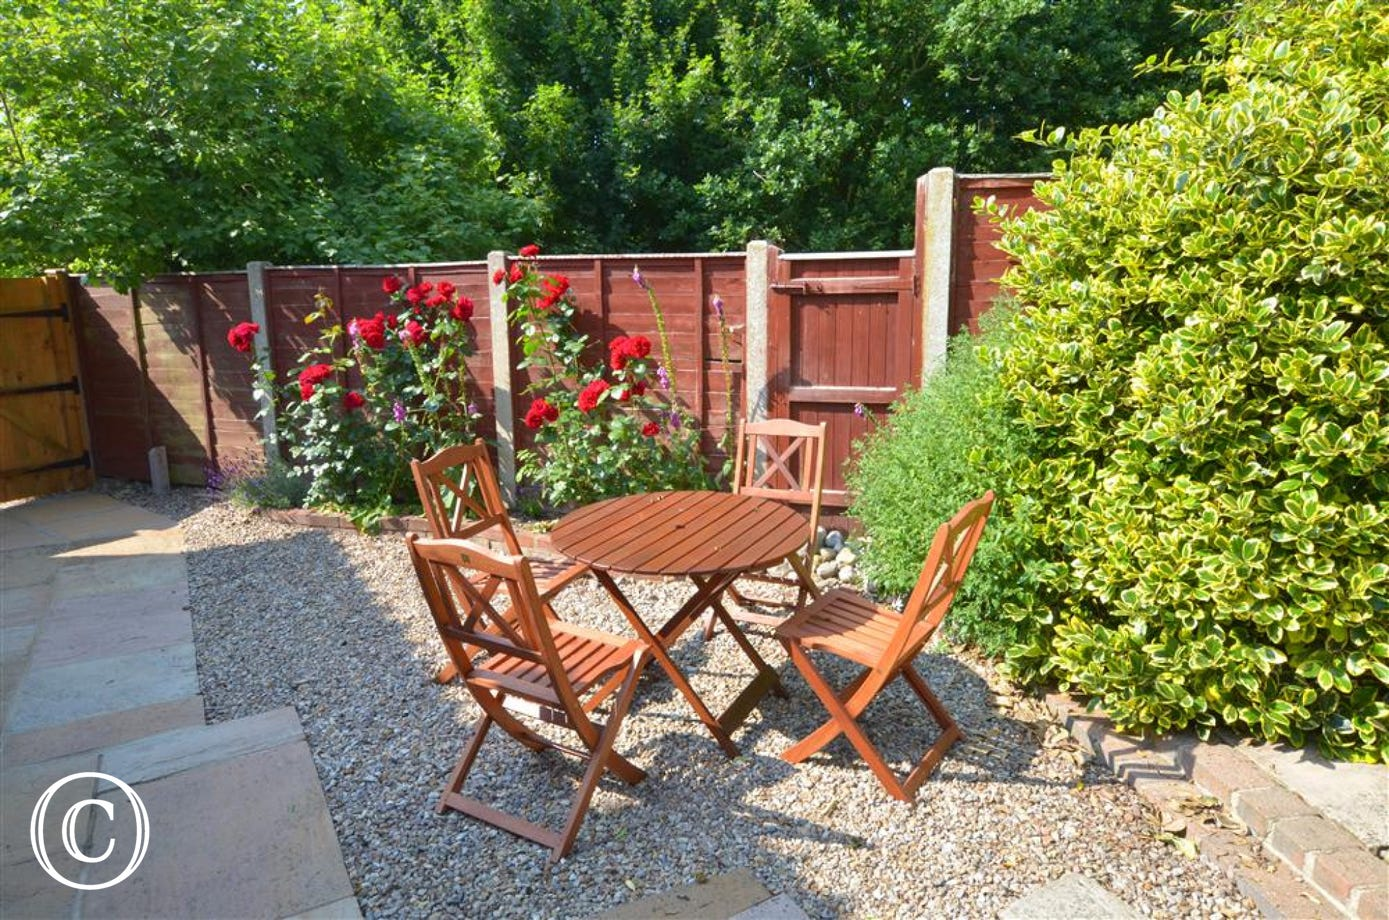 Enclosed gravelled outside area with table and chairs.